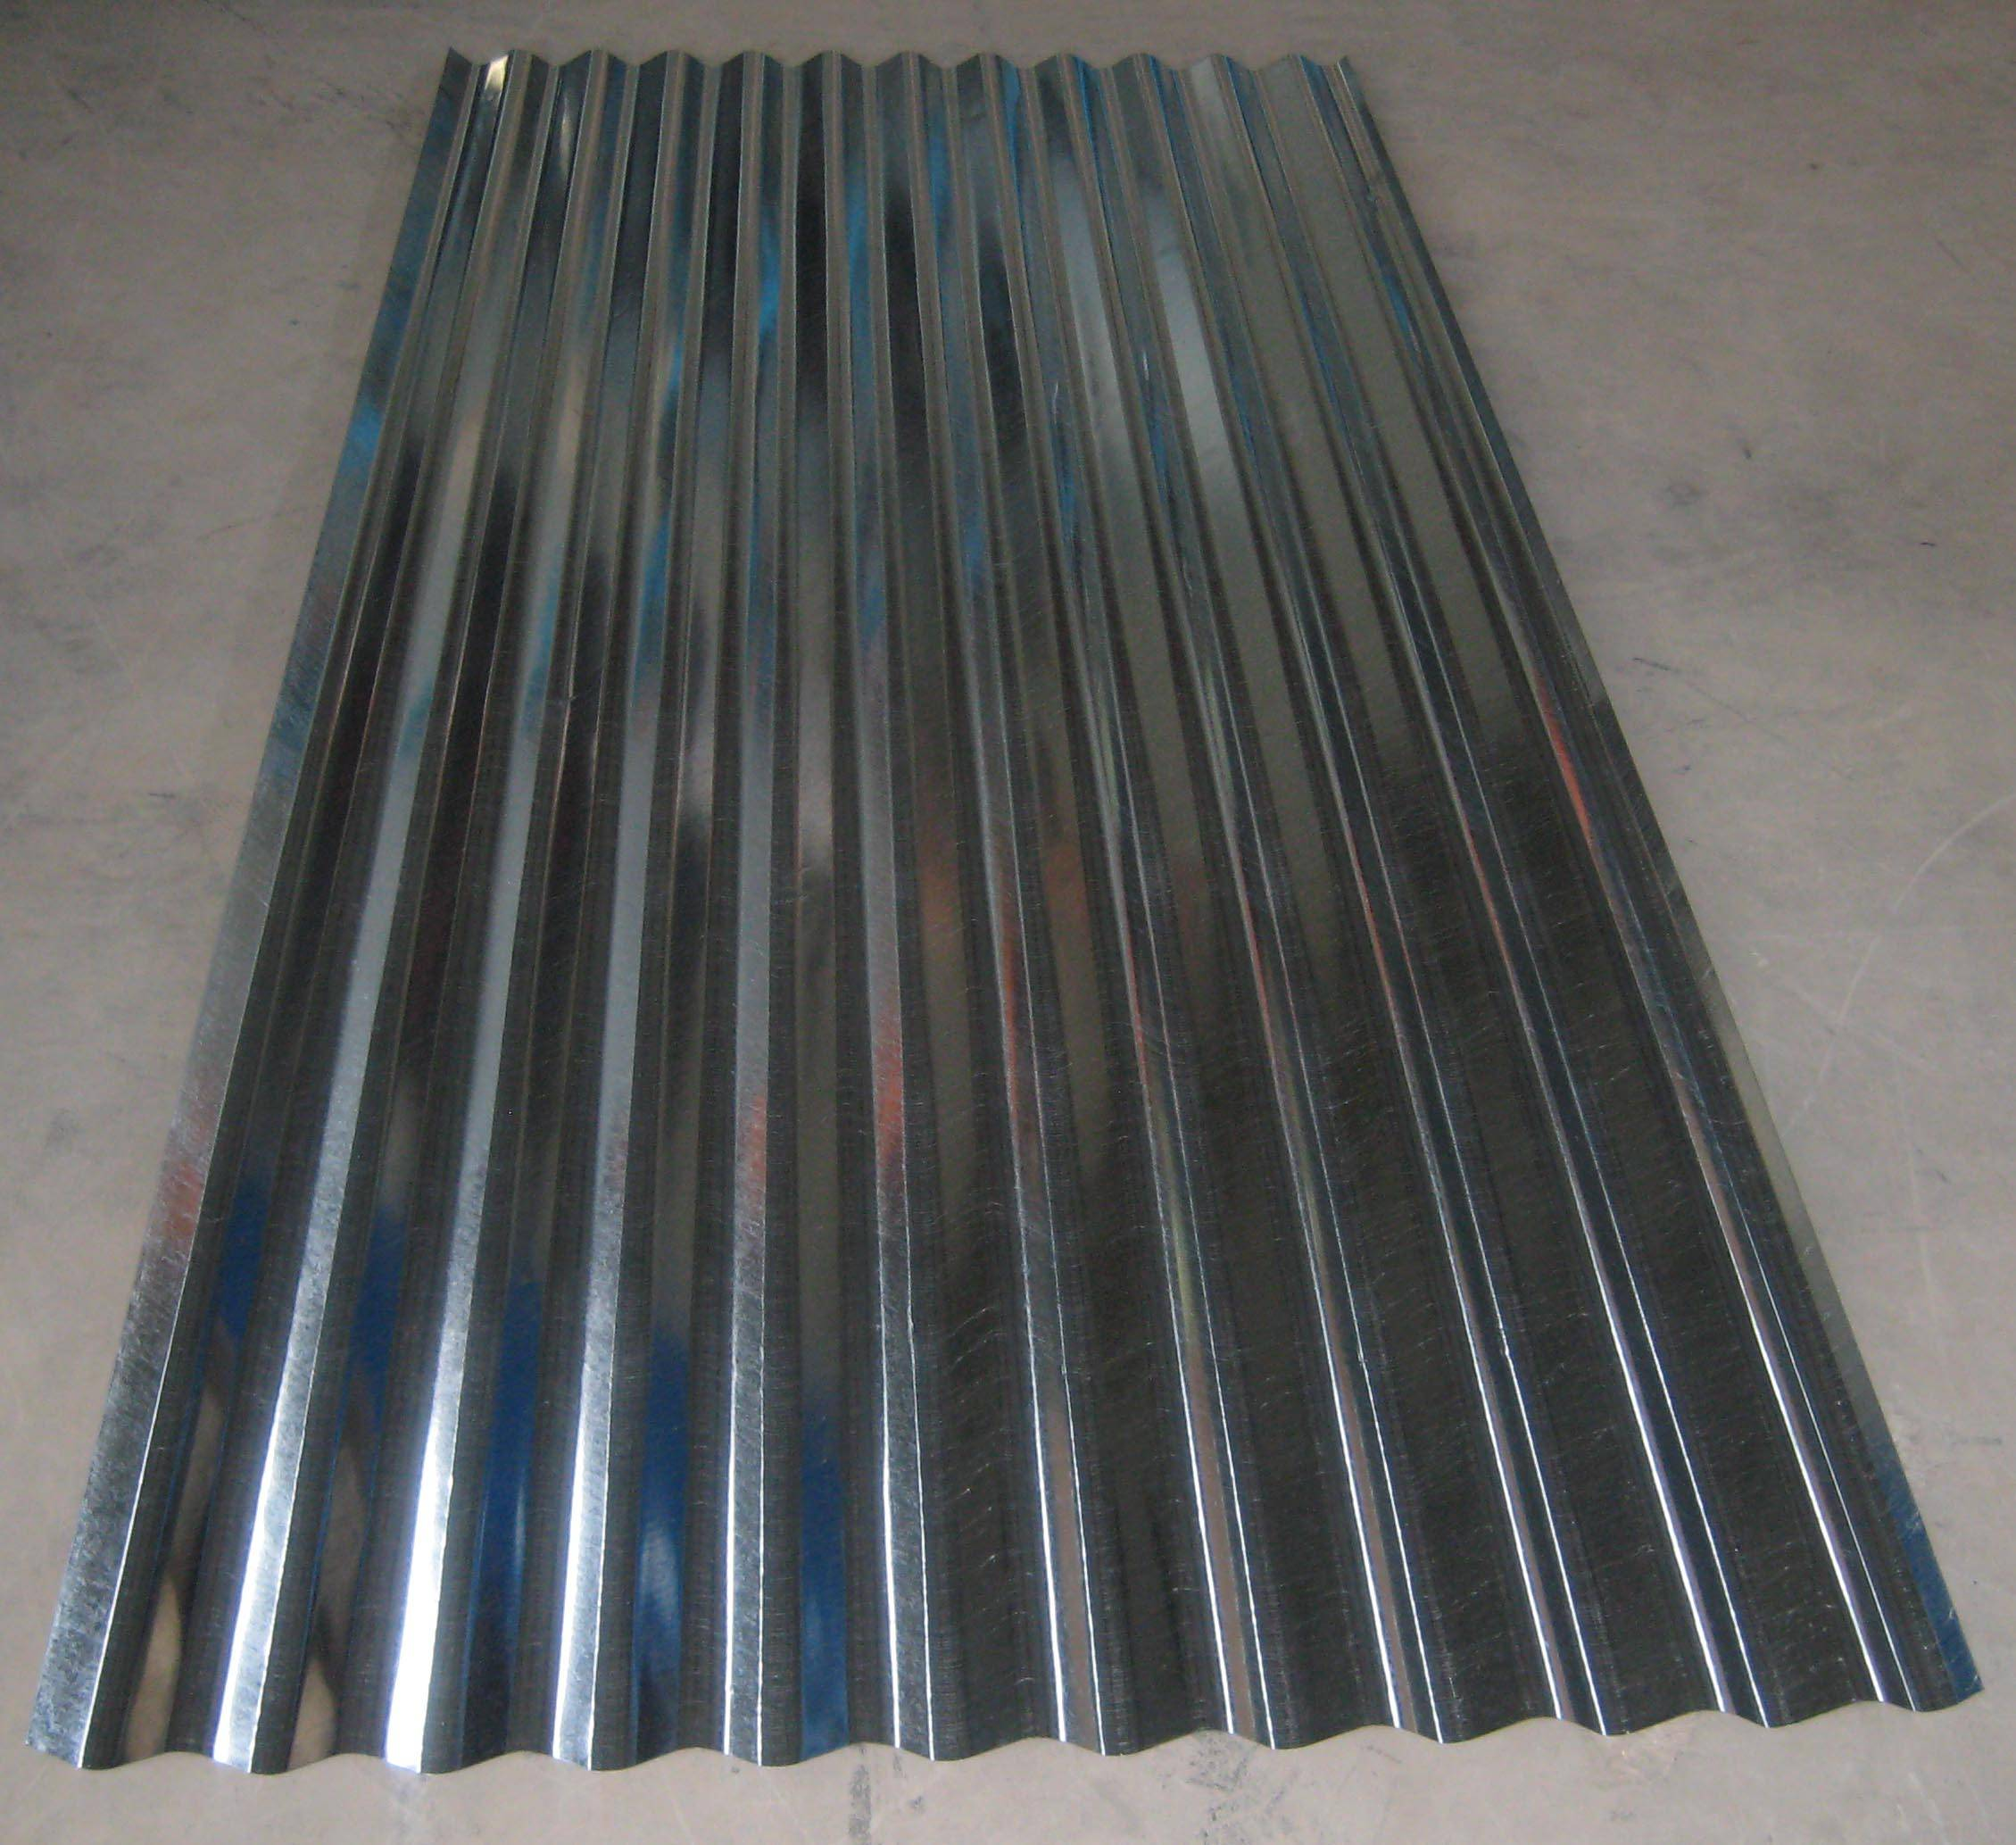 mass of zinc detemination on galvanized This practical aid examines the following zinc coatings: batch hot-dip galvanizing, continuous sheet galvanizing galvanized (zinc), galvannealed (90-92% zinc/8-10.